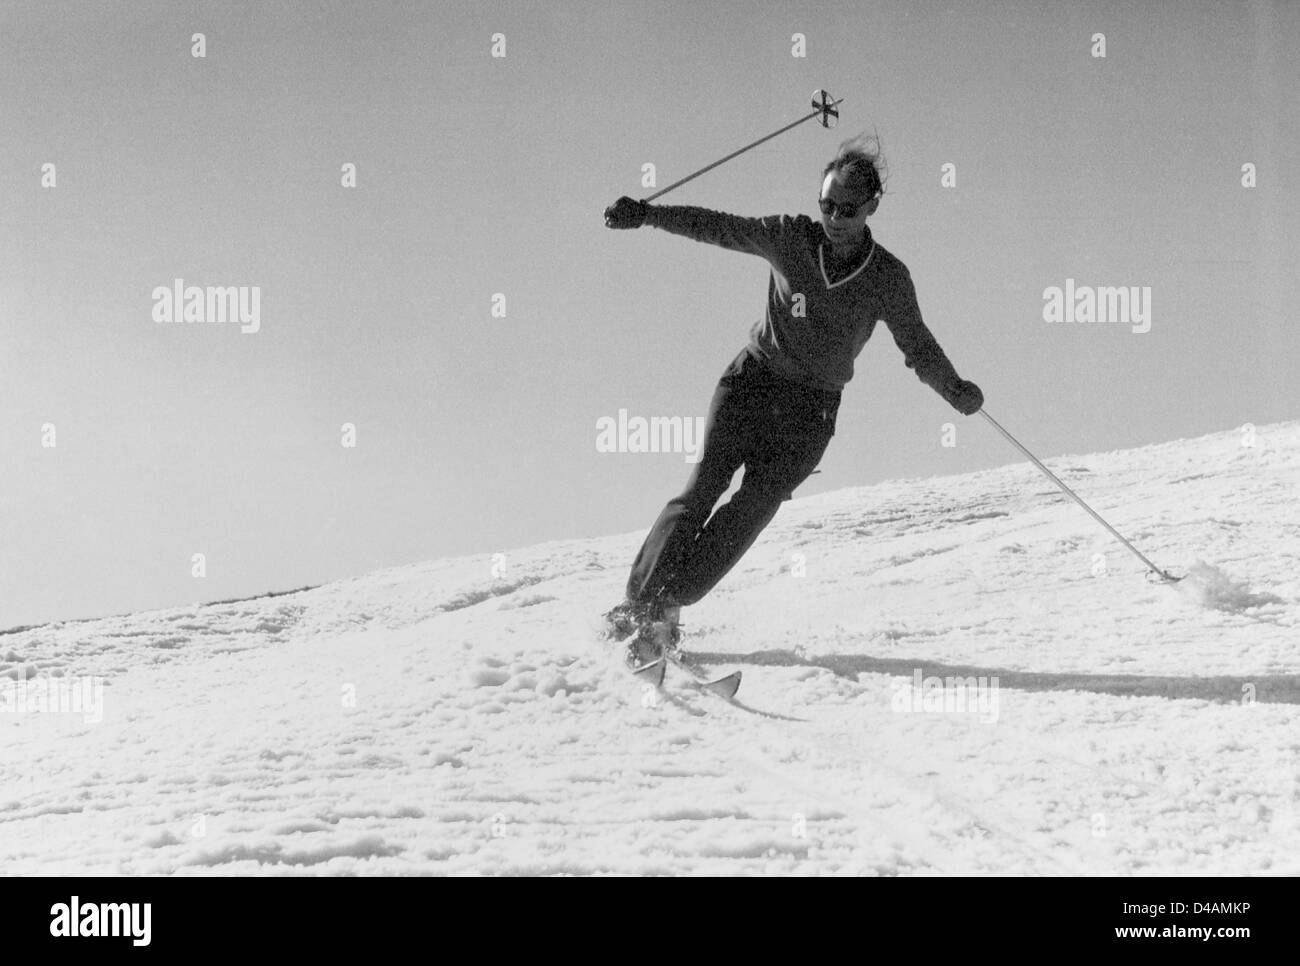 Oberwiesenthal, GDR, a man goes skiing - Stock Image